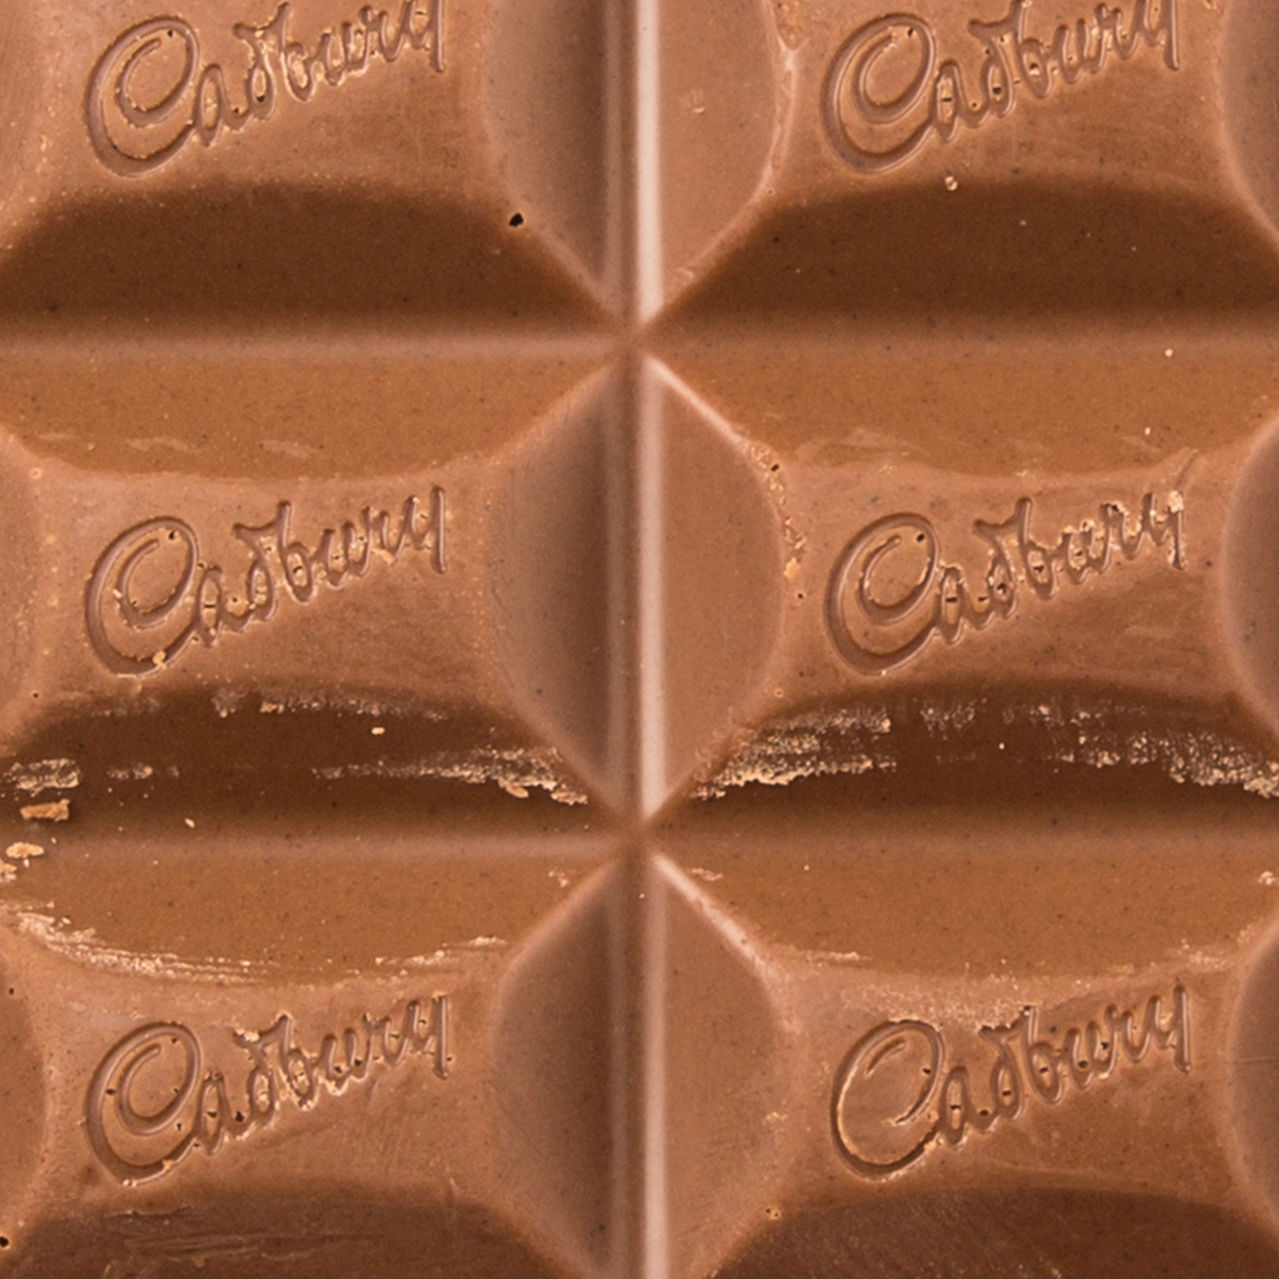 FREE Cadbury chocolate bars at London pop-up